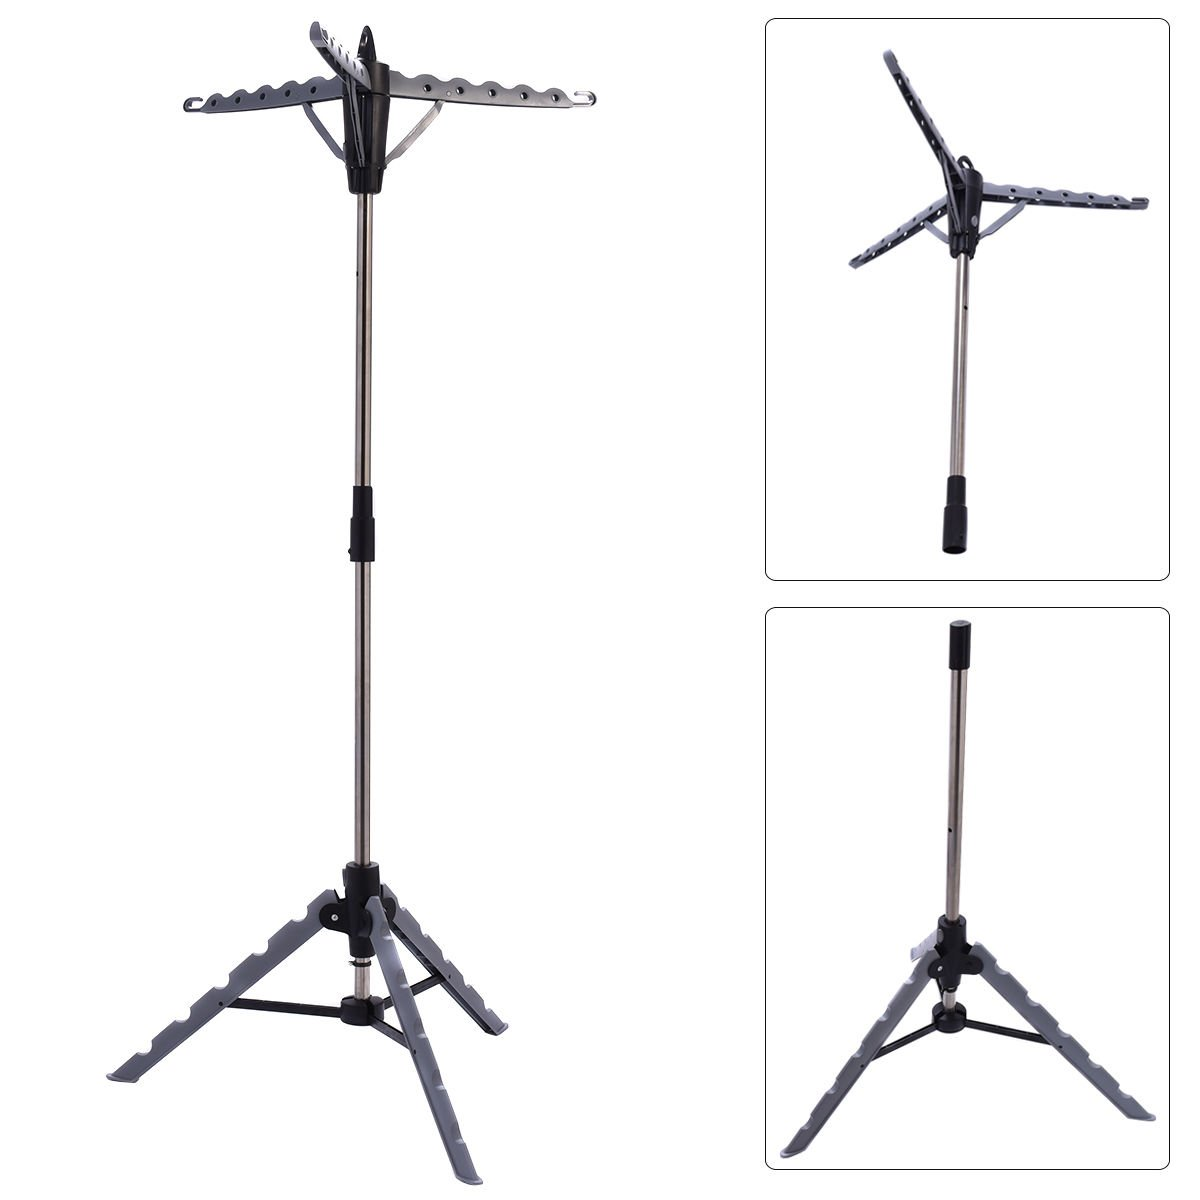 Clothes Hanger Drying Portable Multifunctional Retractable Laundry Racks Tripod by TF-Godung (Image #2)